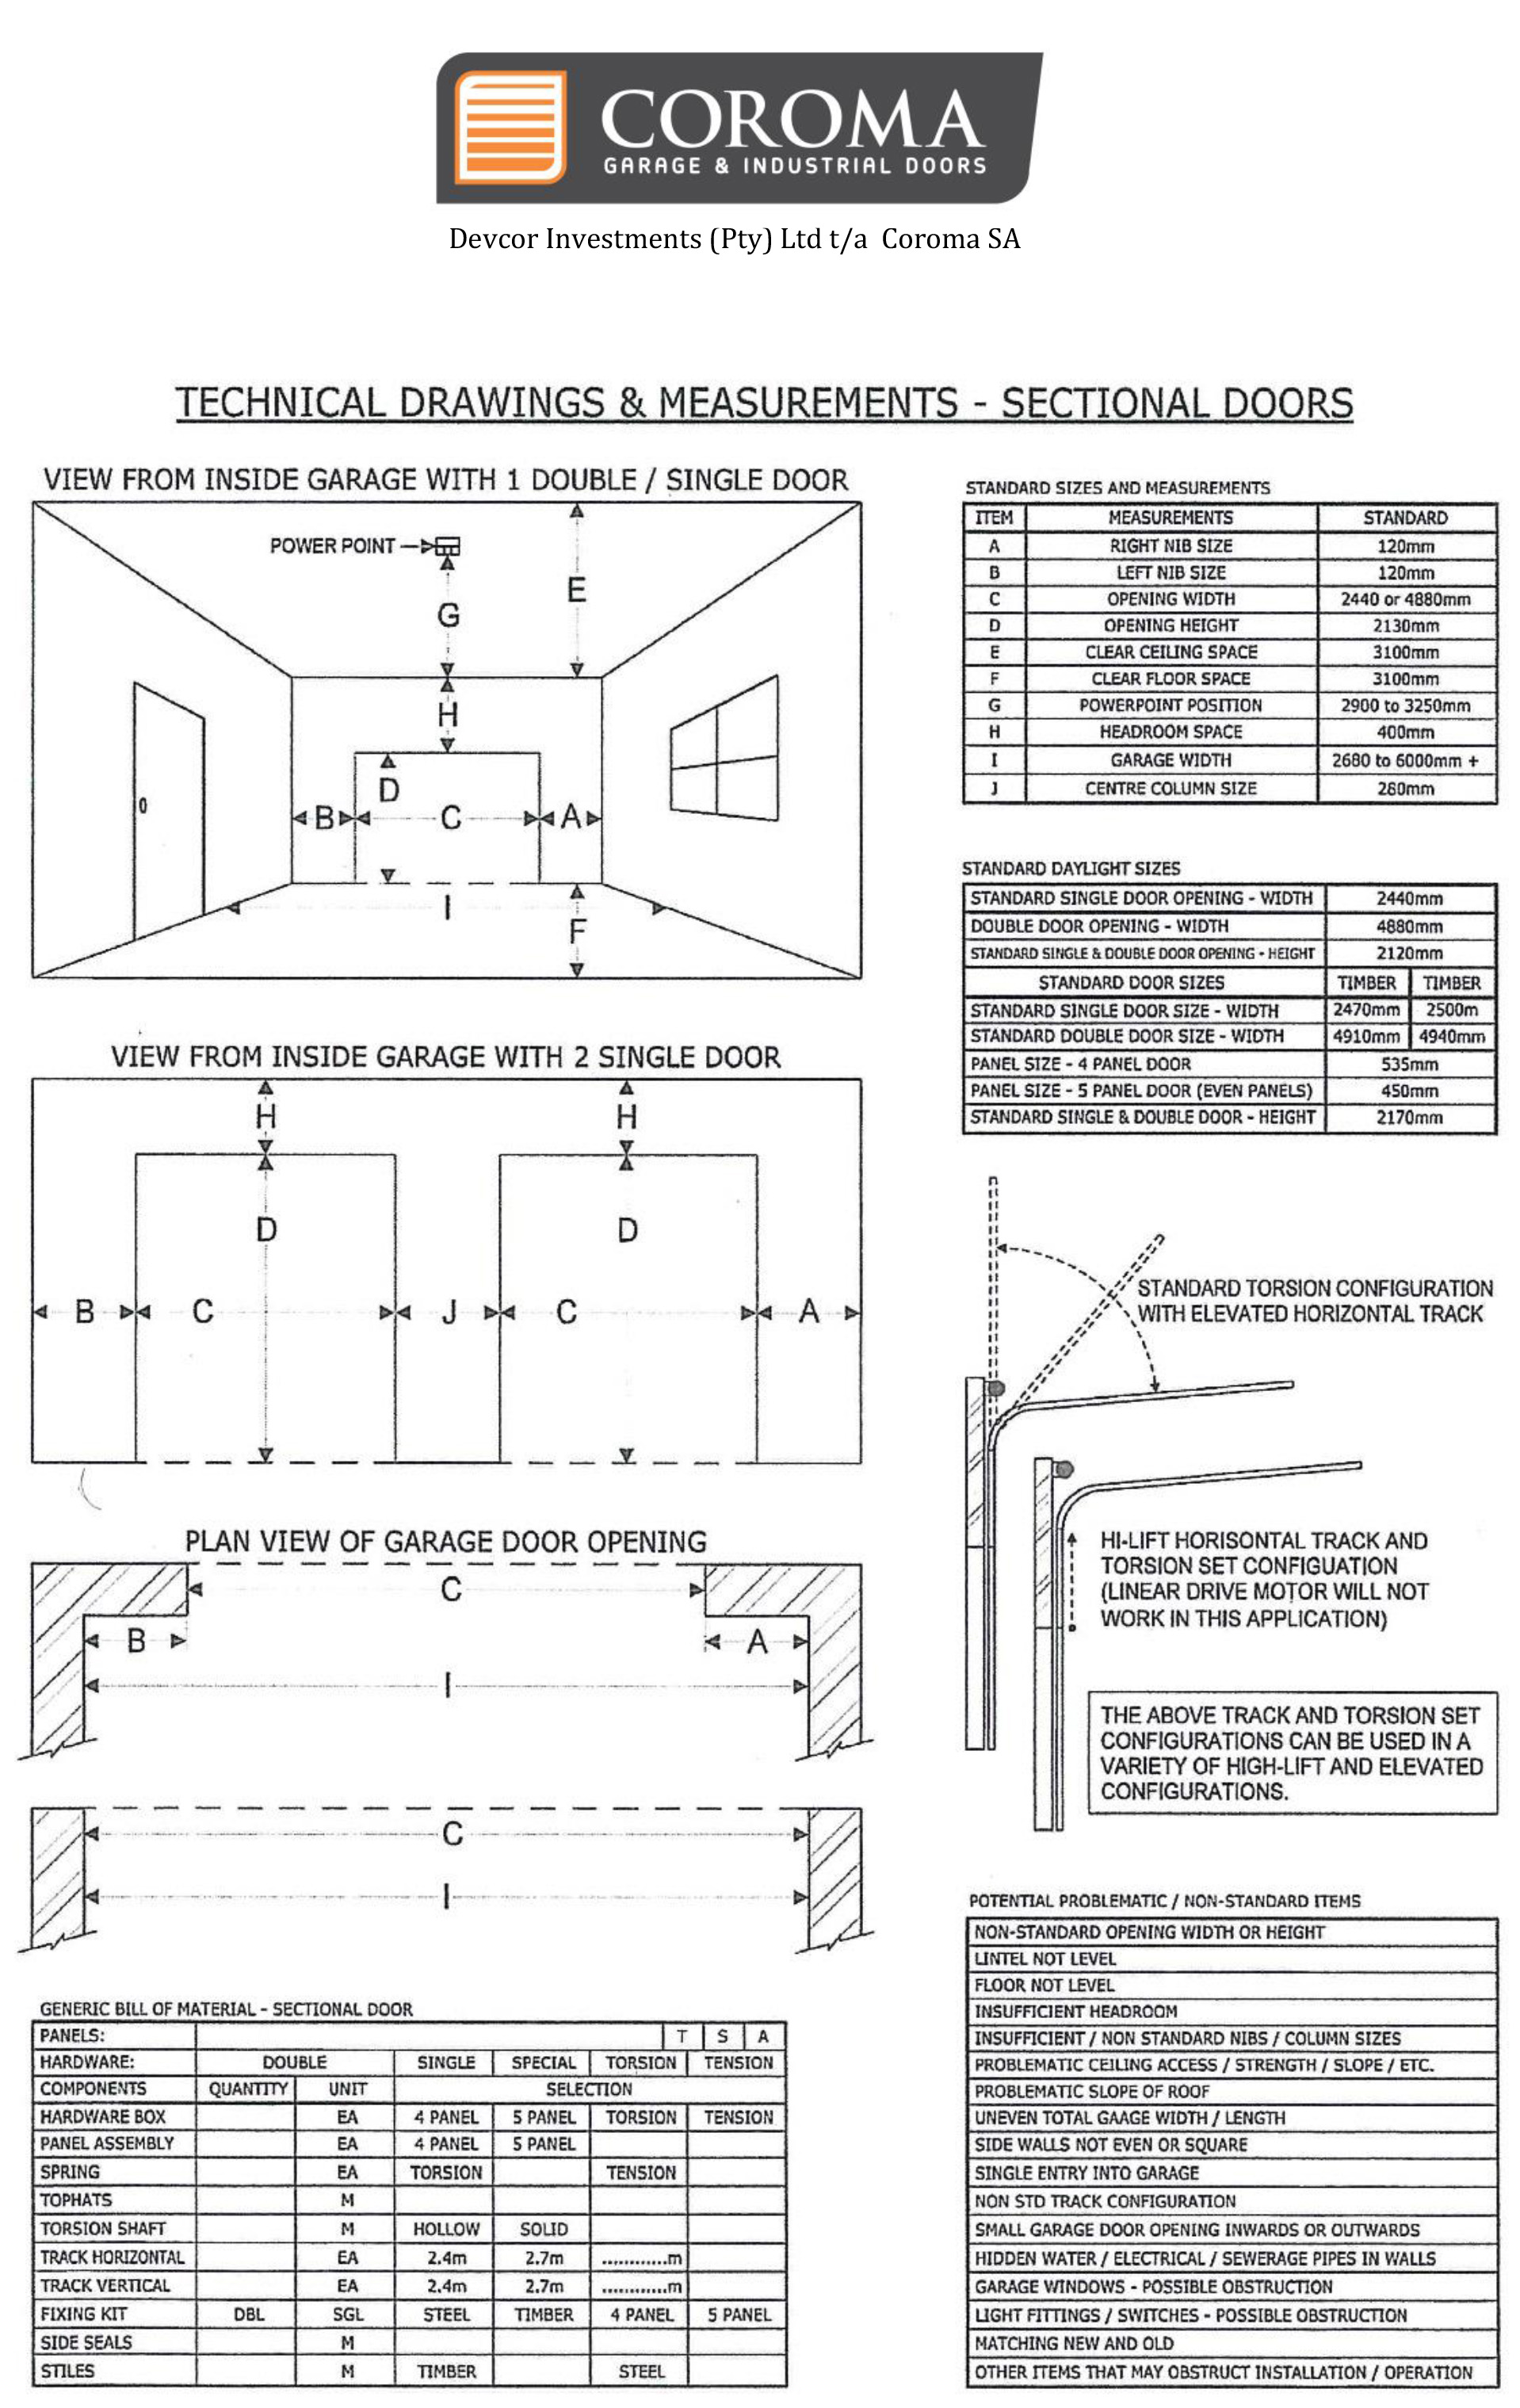 Technical Drawing & Measurements - Sectional Doors